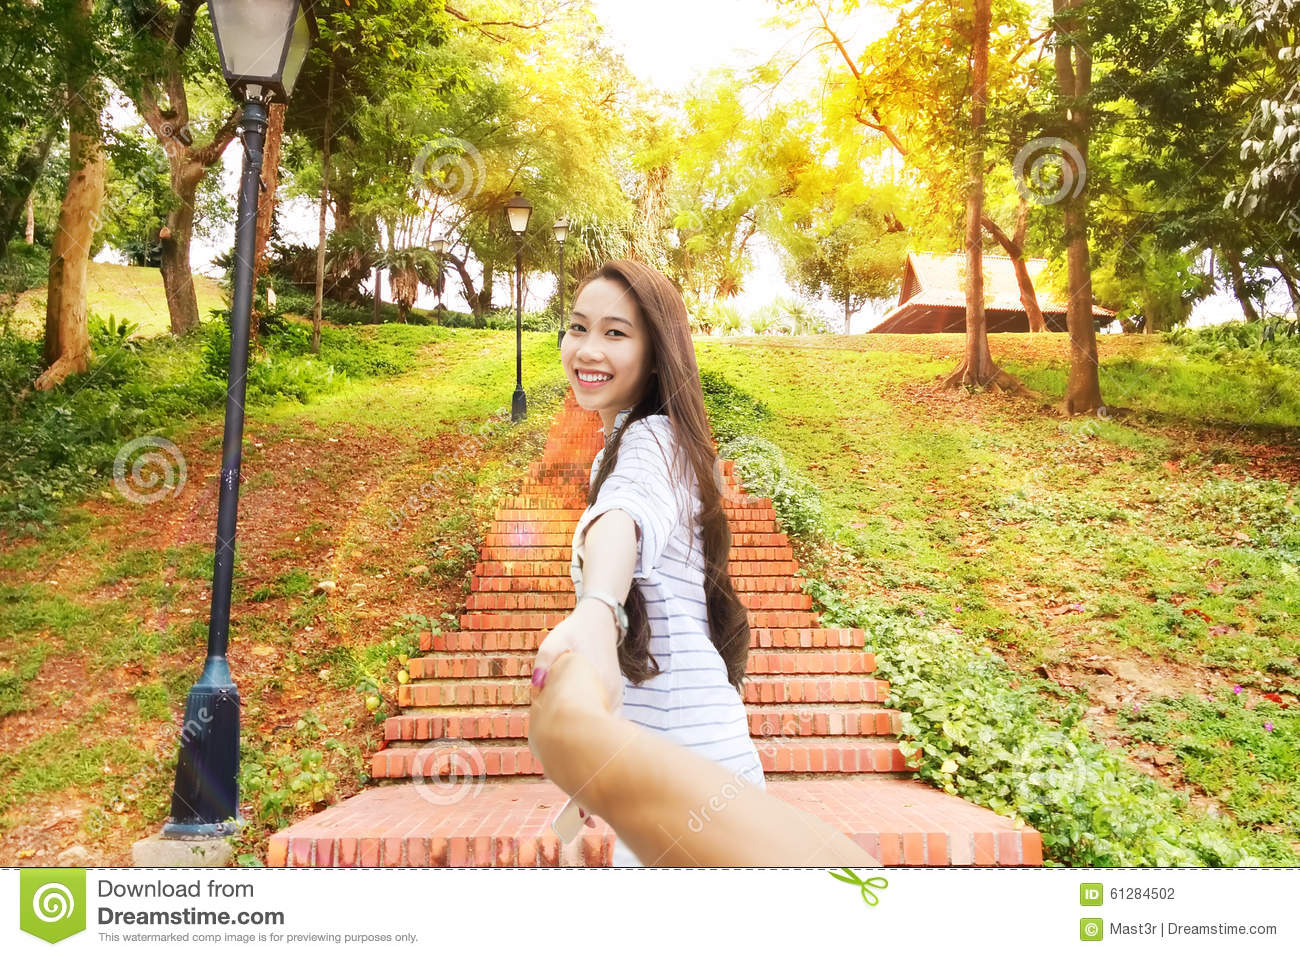 medicine park asian girl personals Medicine park's best 100% free asian girls dating site meet thousands of single asian women in medicine park with mingle2's free personal ads and chat rooms our network of asian women in medicine park is the perfect place to make friends or find an asian girlfriend in medicine park.